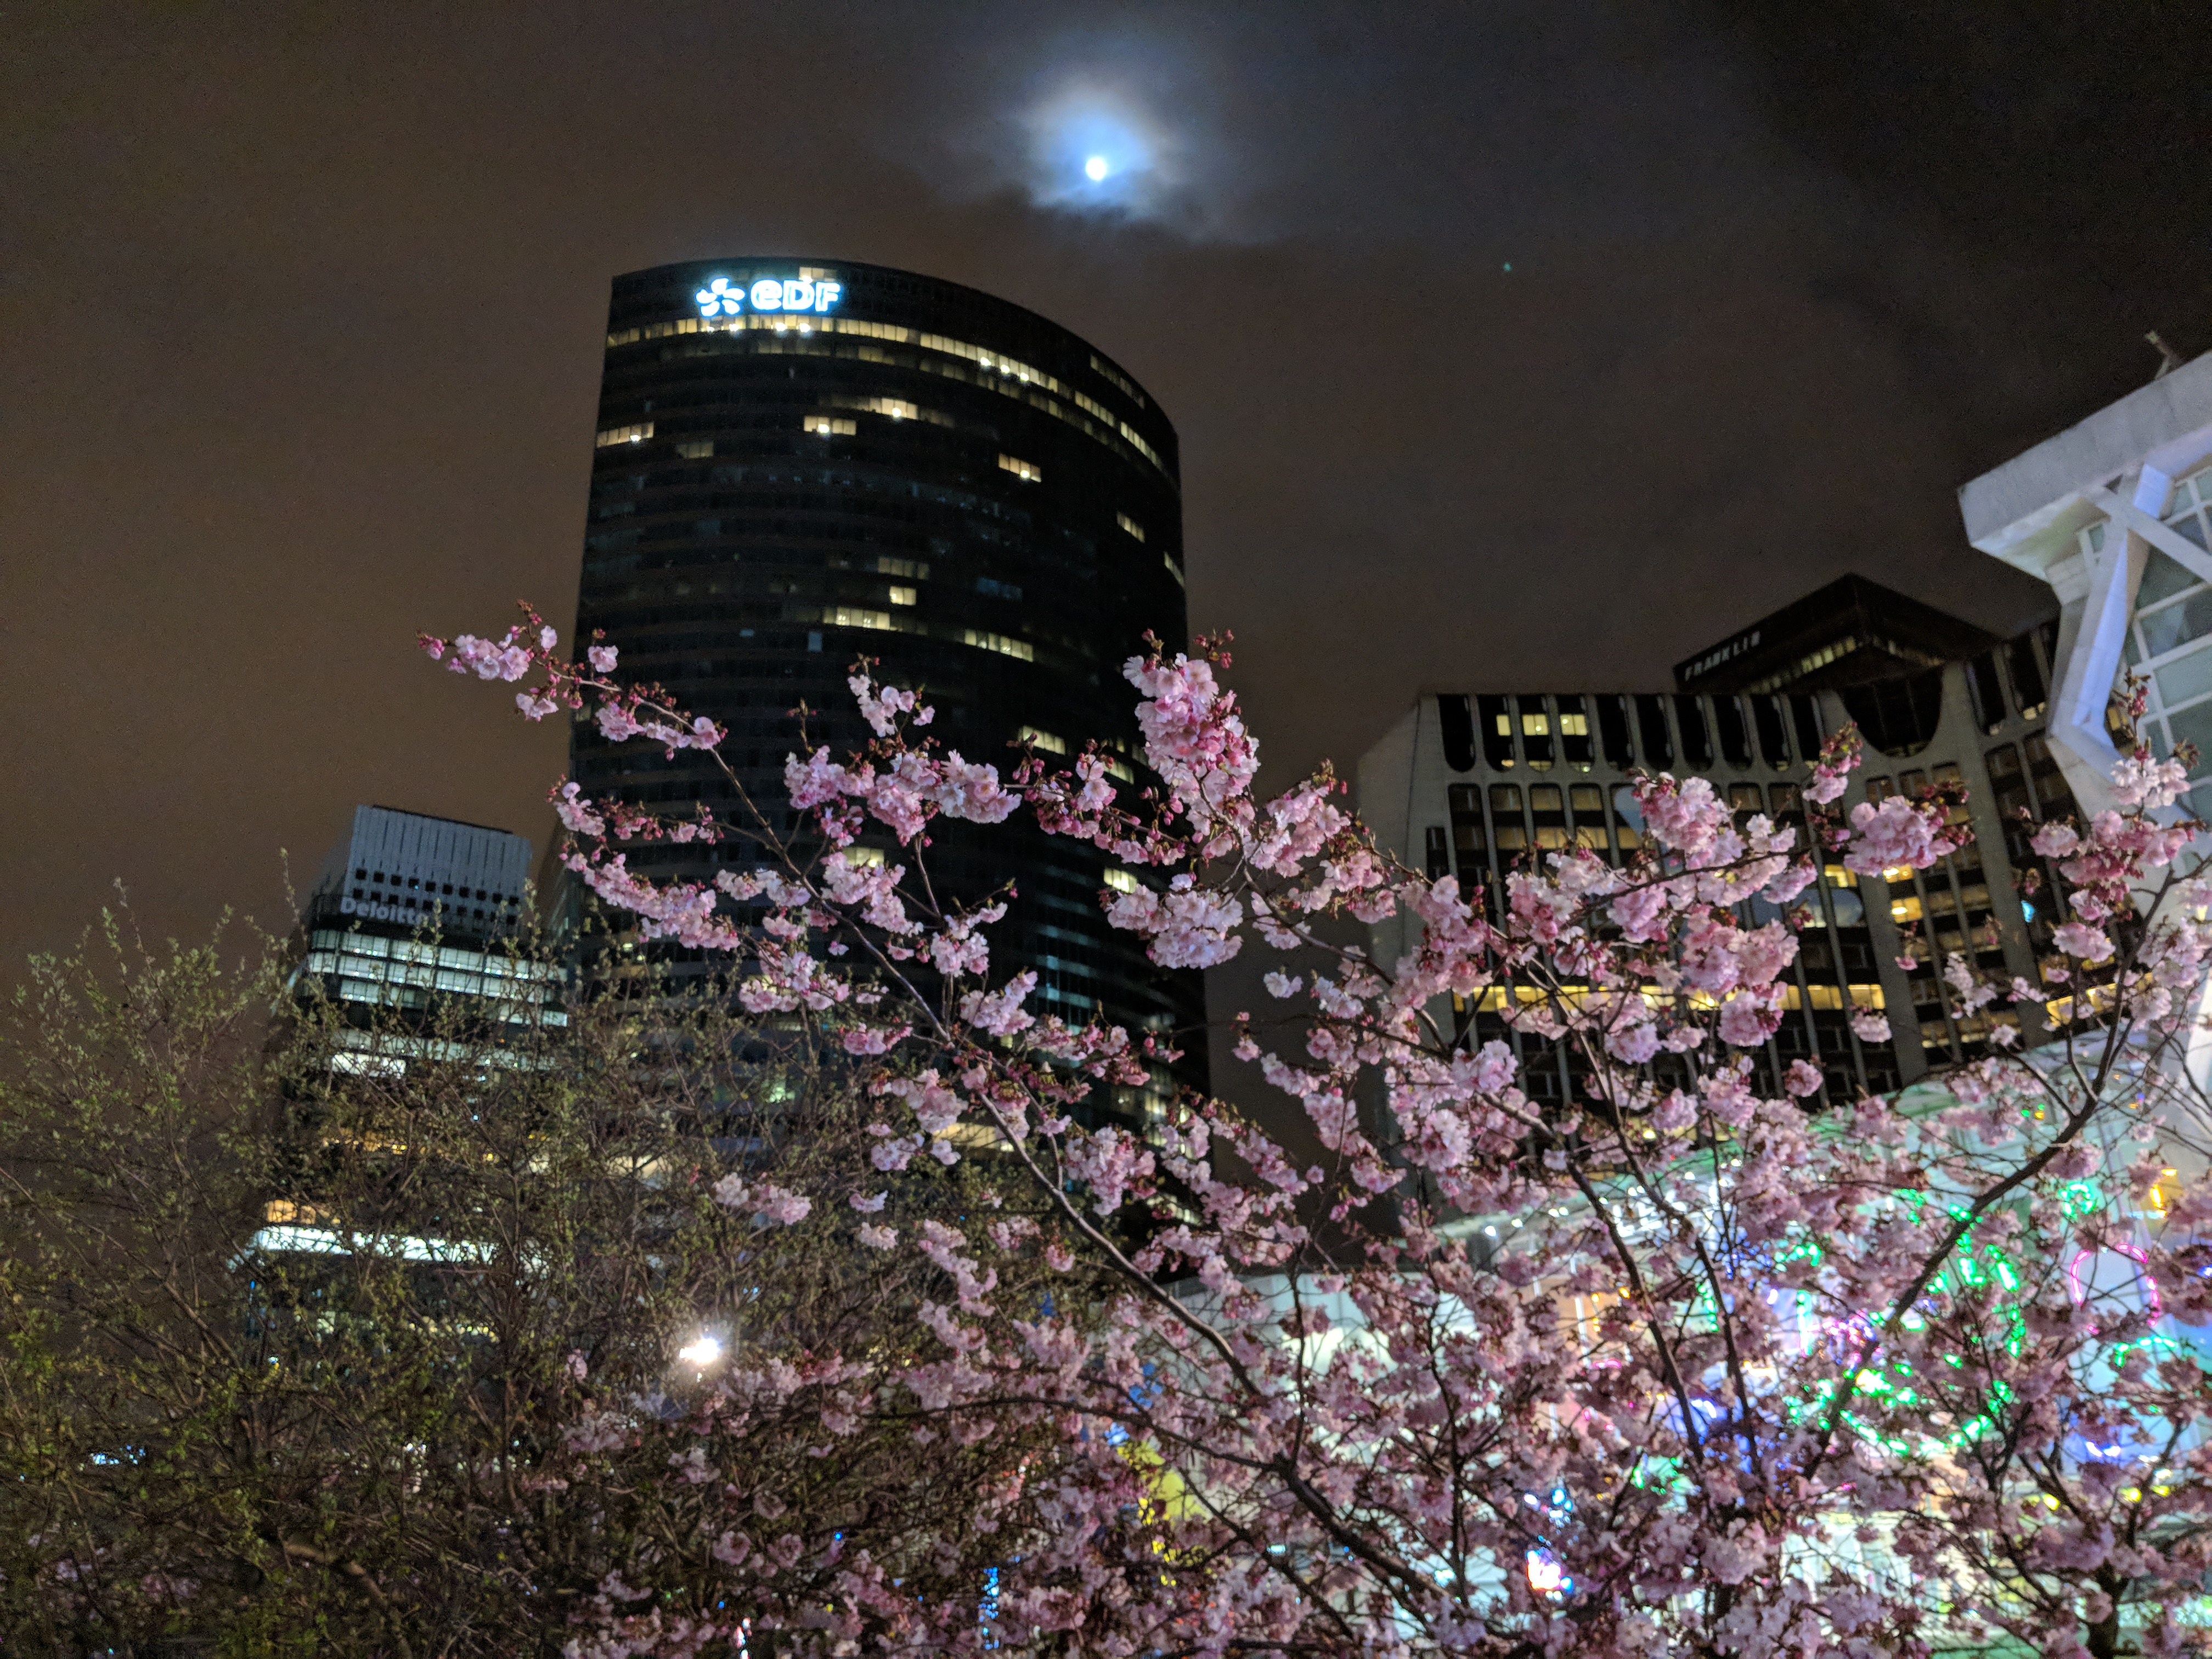 Huawei's P20 Pro takes even better night pictures than the